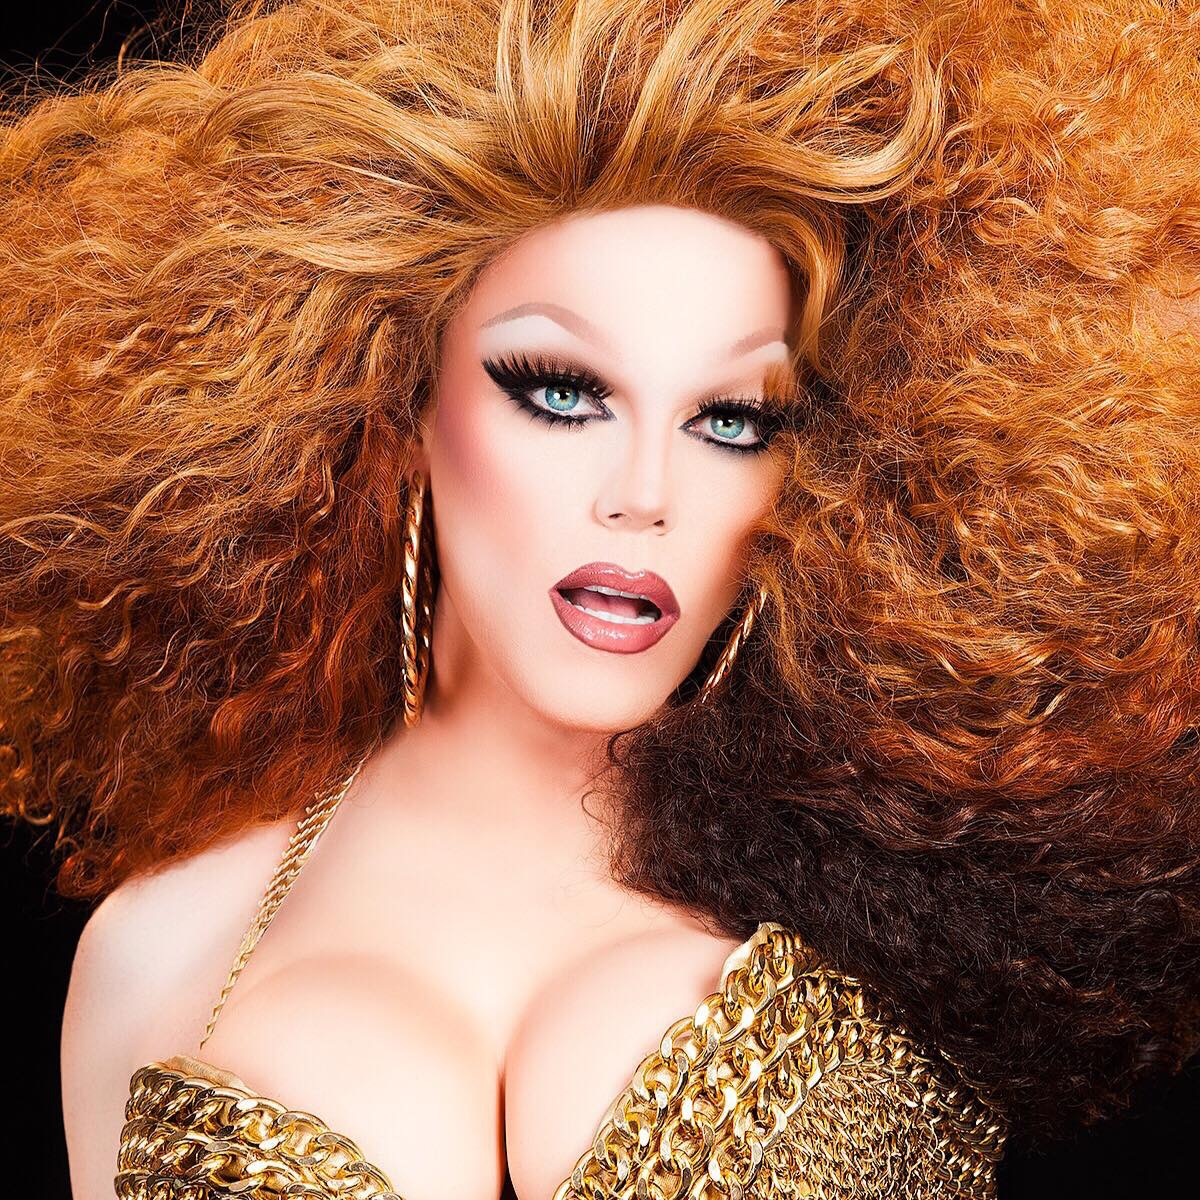 Morgan McMichaels - from Rupaul's Drag Race